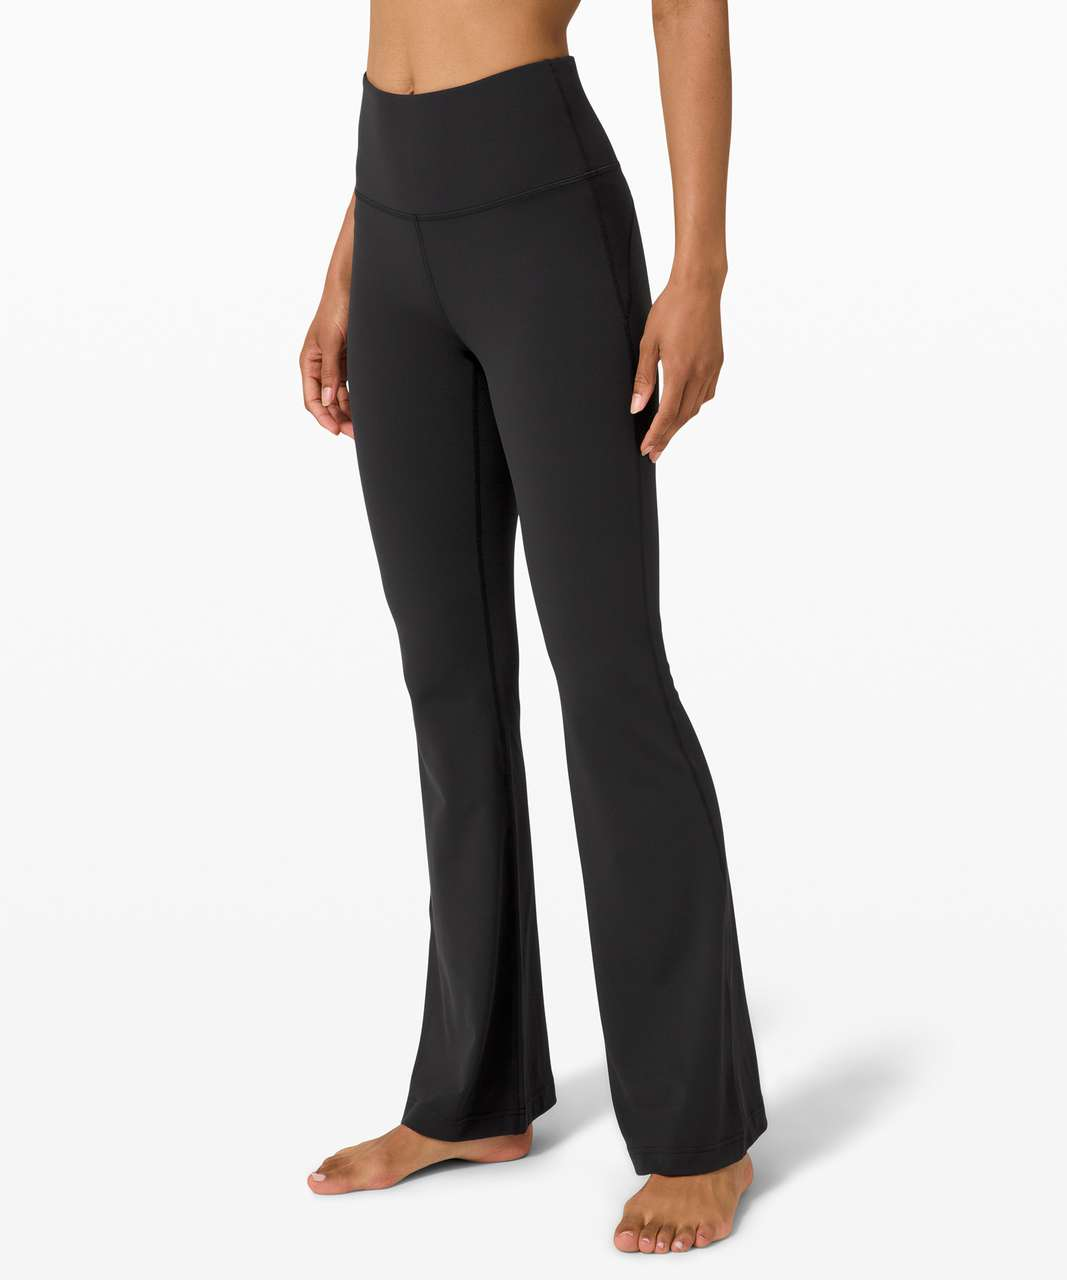 Lululemon Groove Pant Flare Super High-Rise *Nulu - Black (First Release)